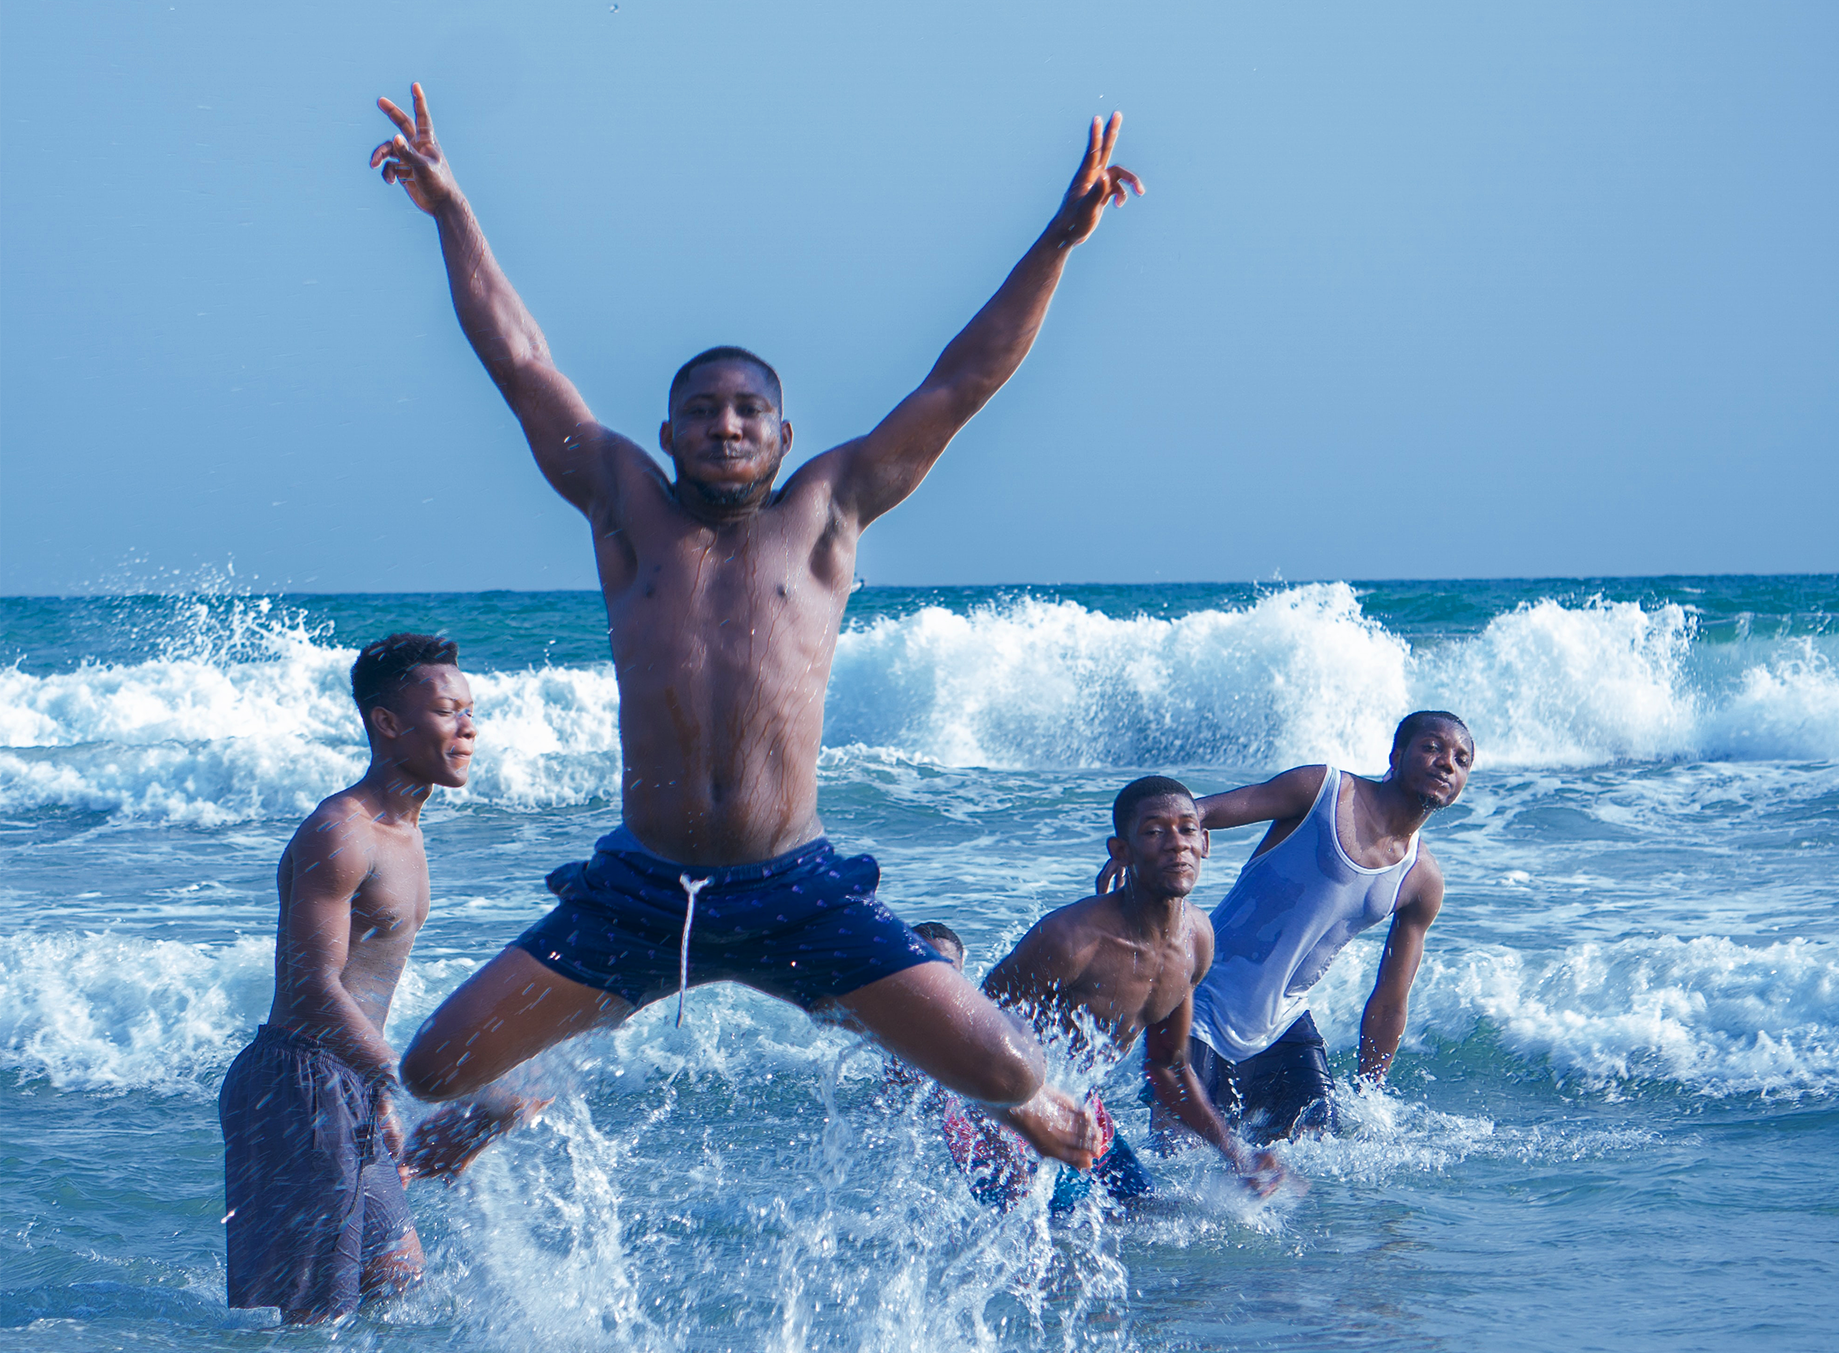 Four Black men playing and jumping in ocean